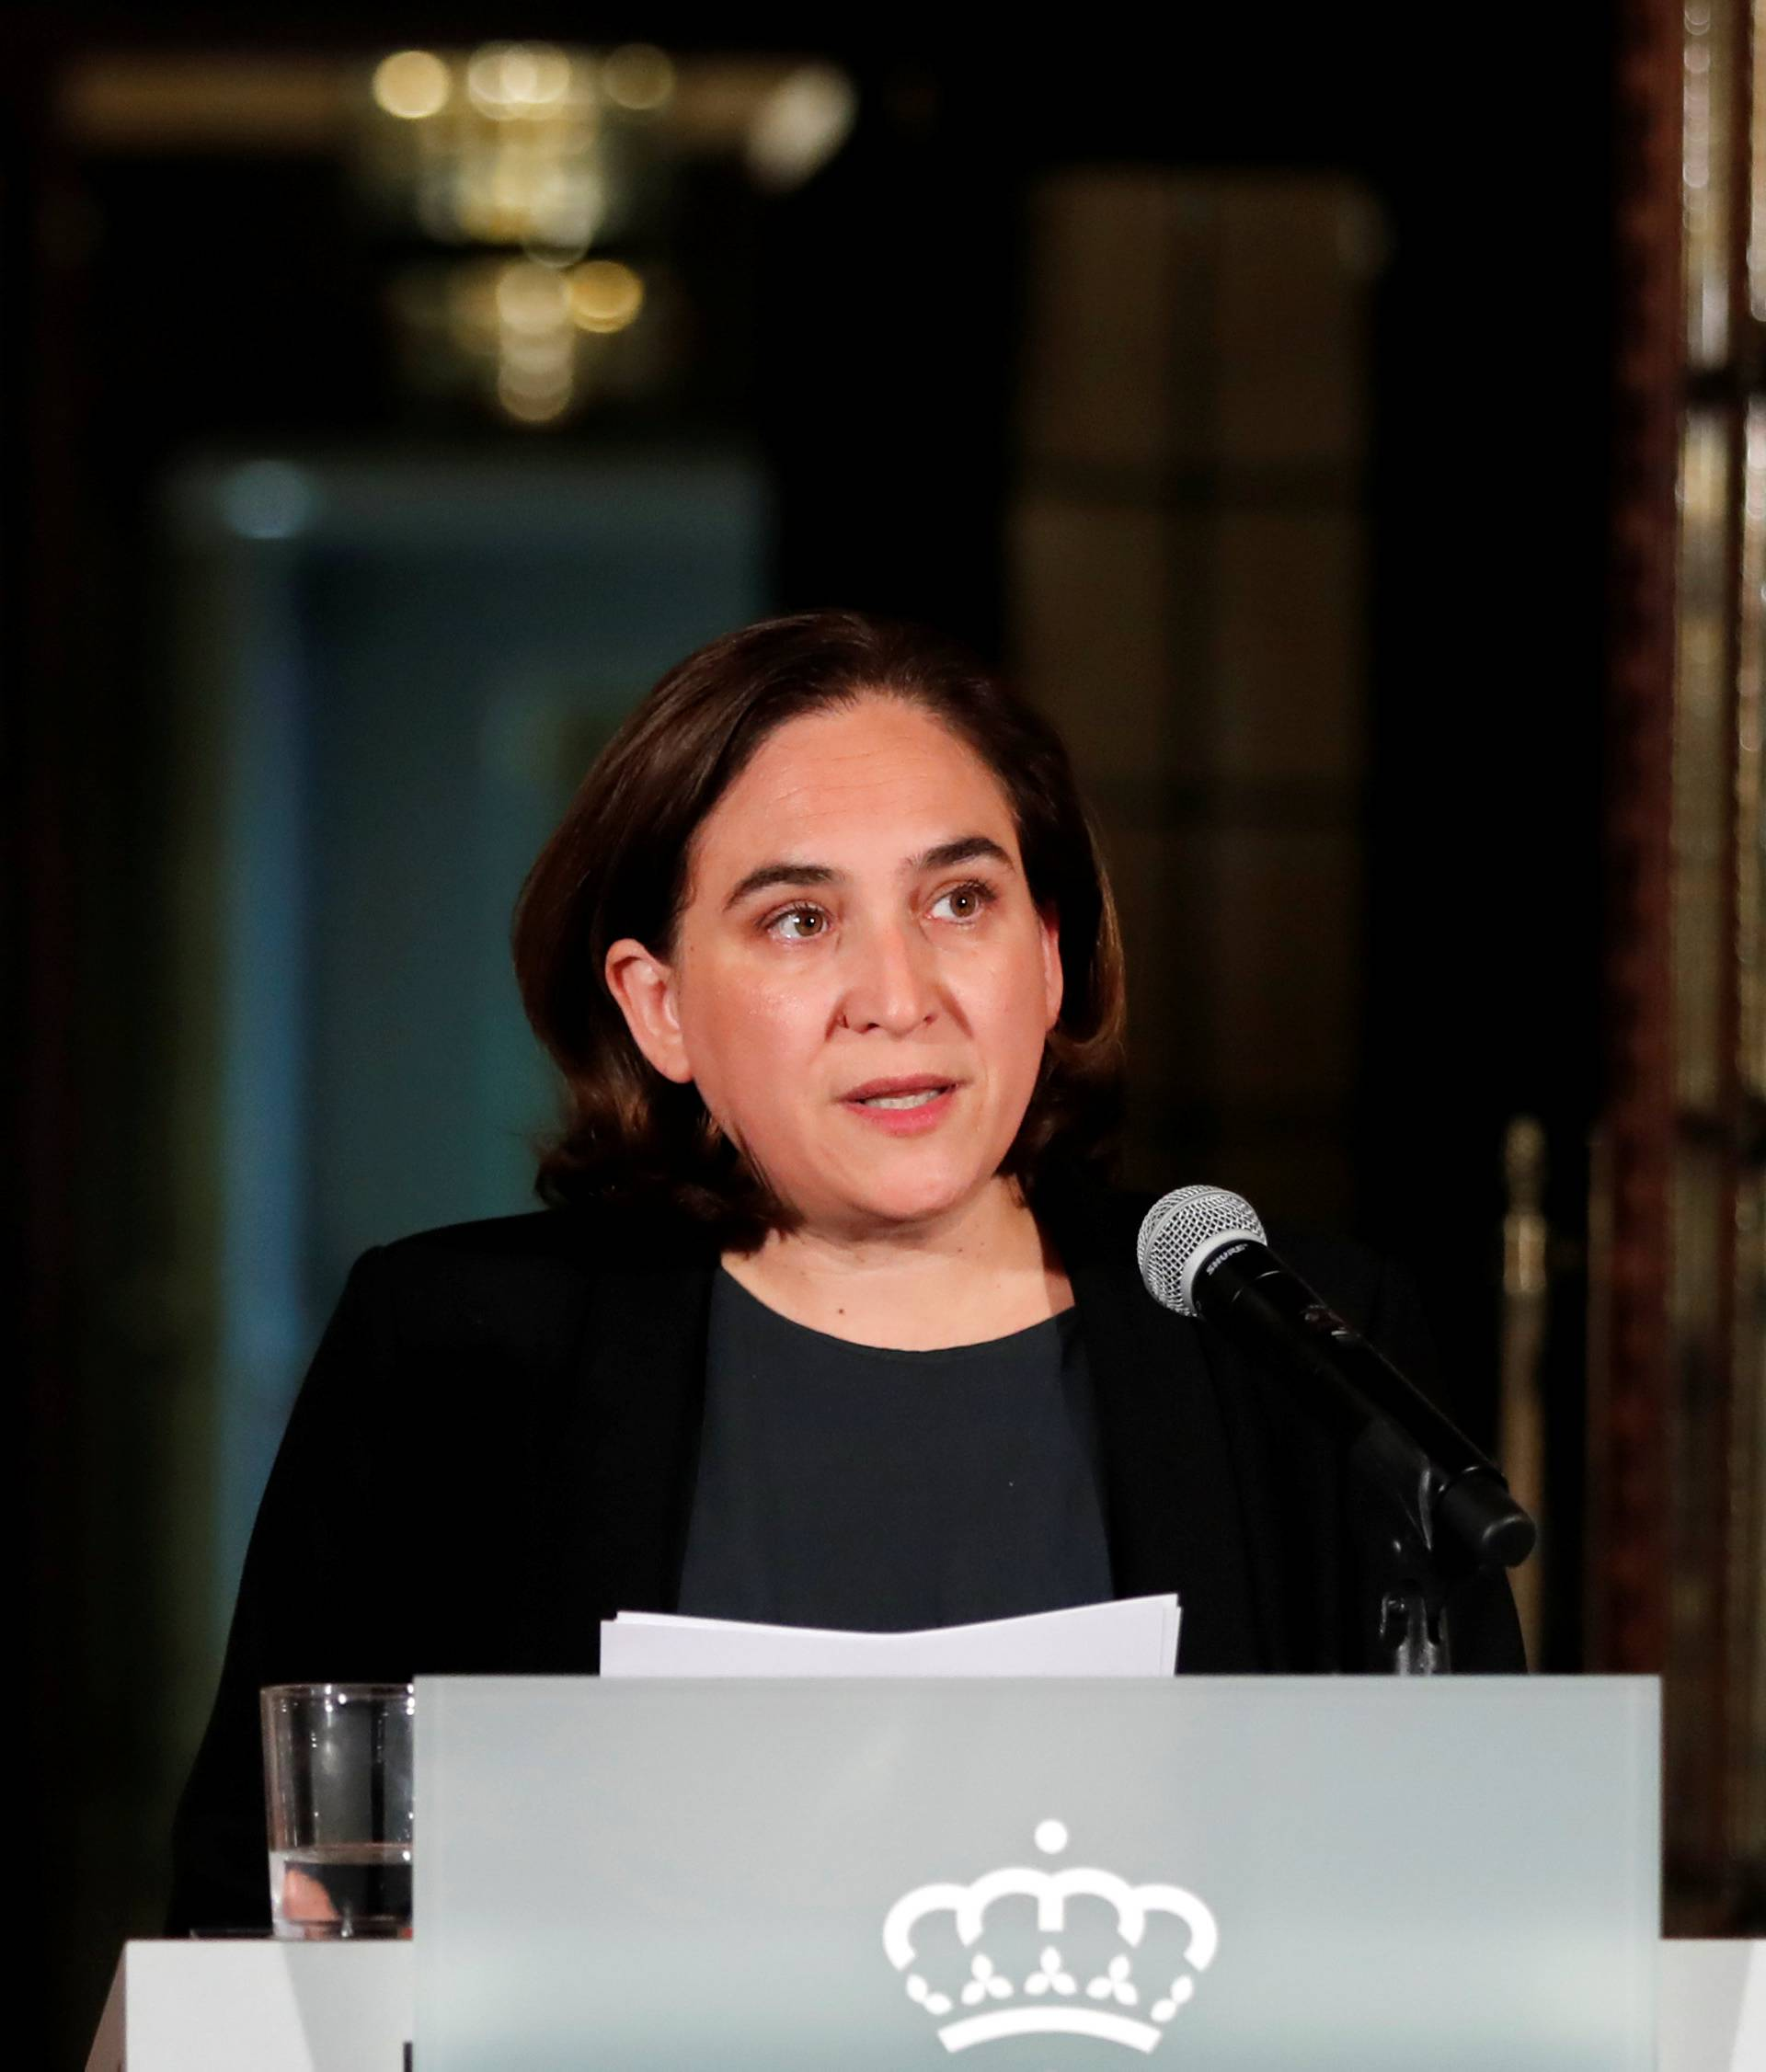 Ada Colau, the Mayor of Barcelona, issues a statement in Barcelona